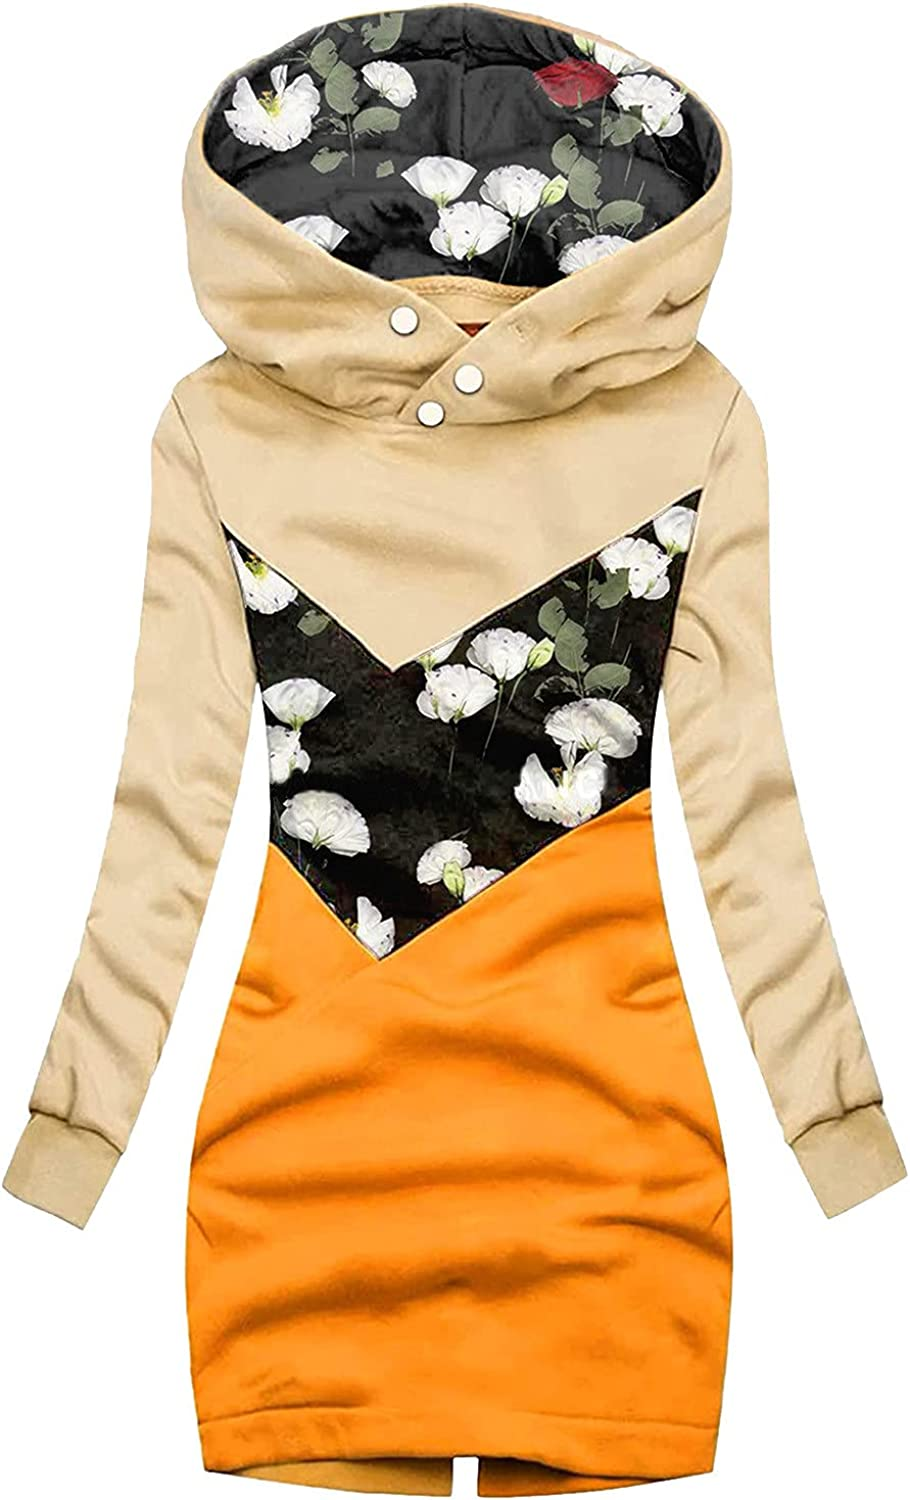 Cardigan Sweaters Low price For Women Direct sale of manufacturer Lounge Hooded Long Sleev Flower Coat